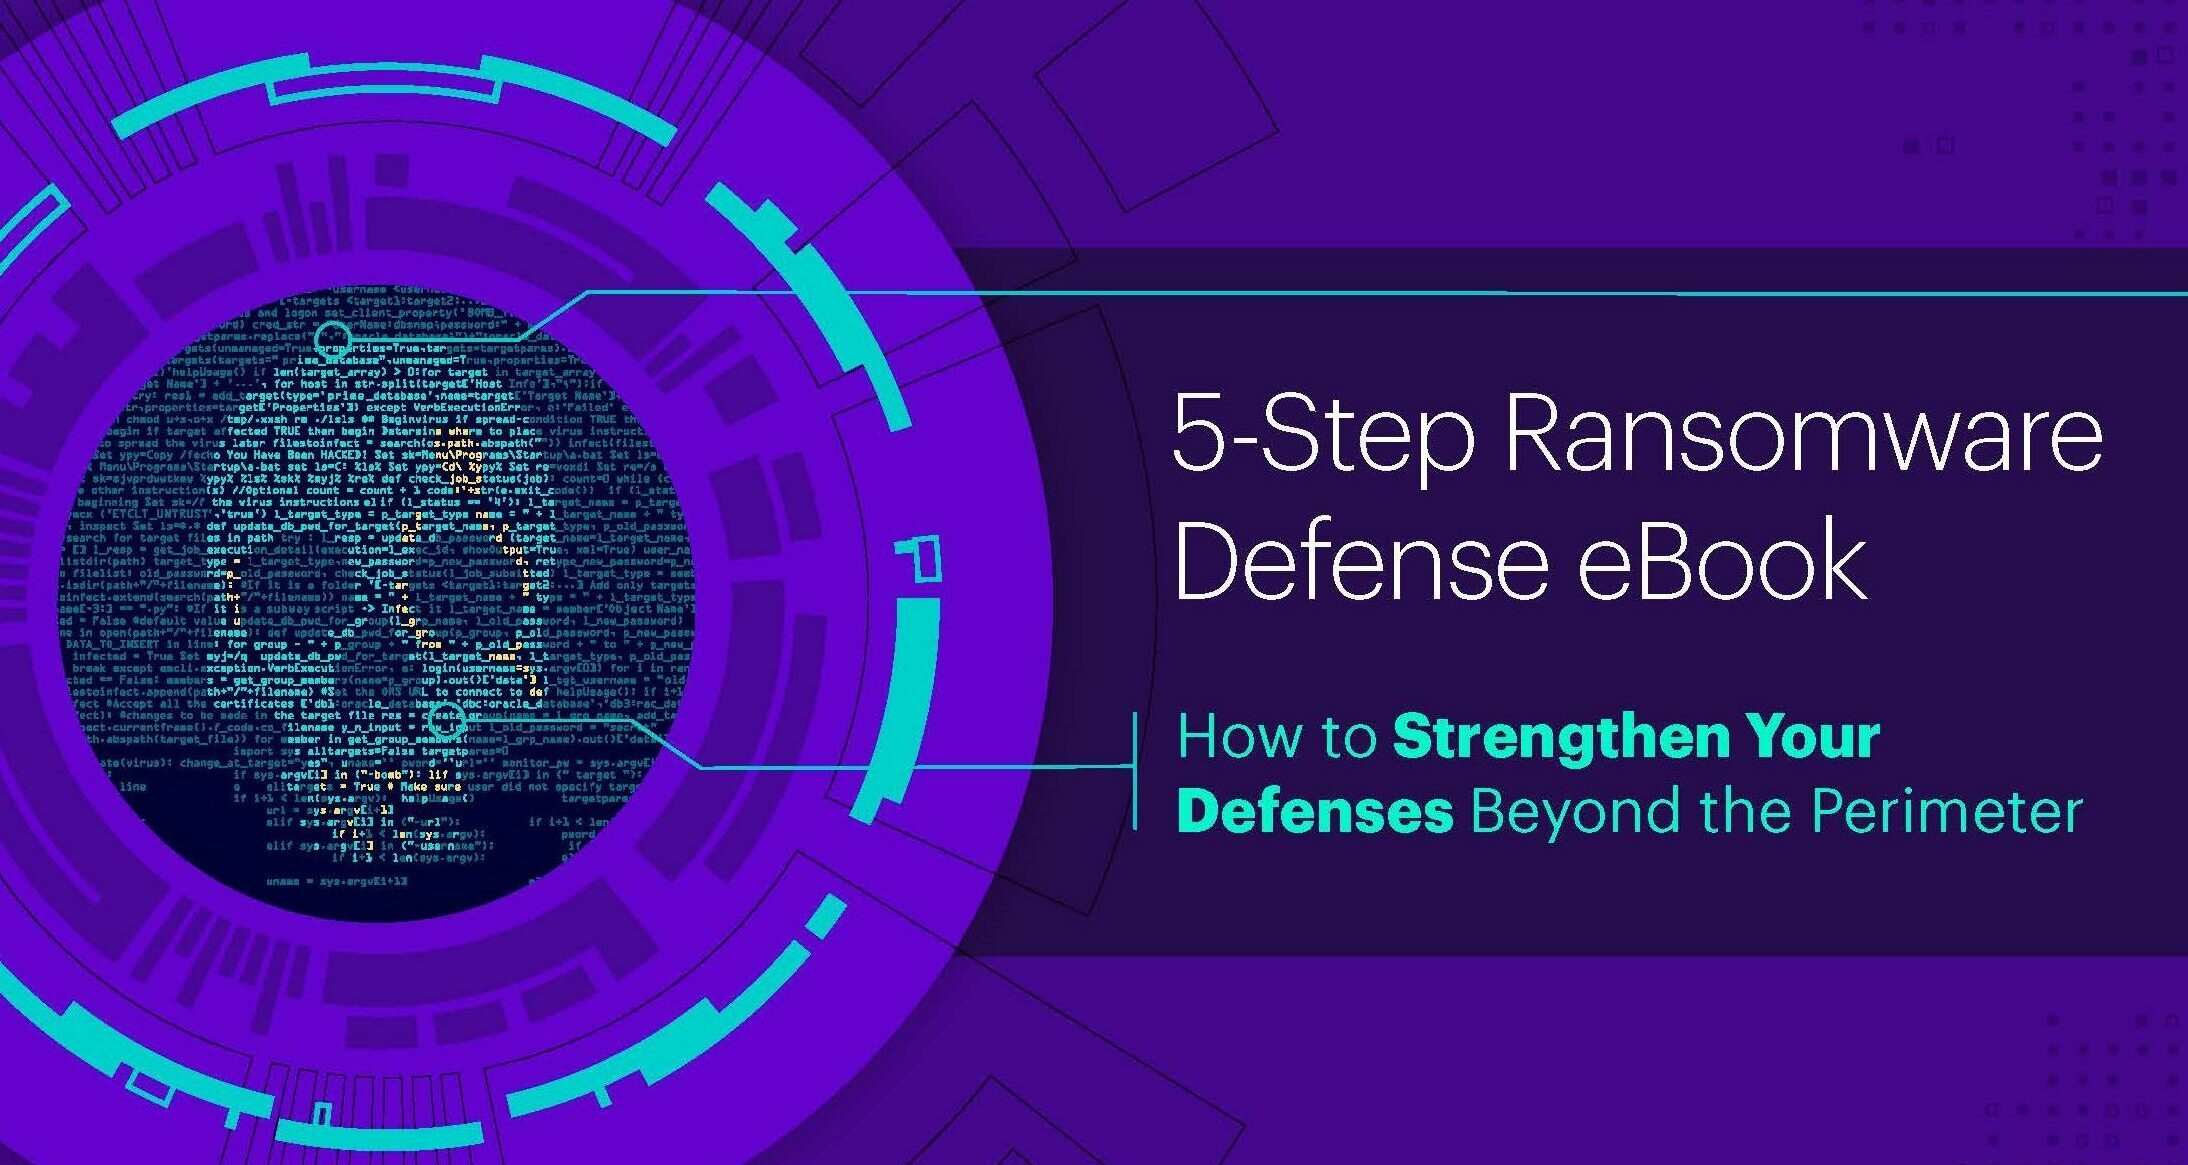 5-Step-Ransomware-Defense-eBook_Page_1